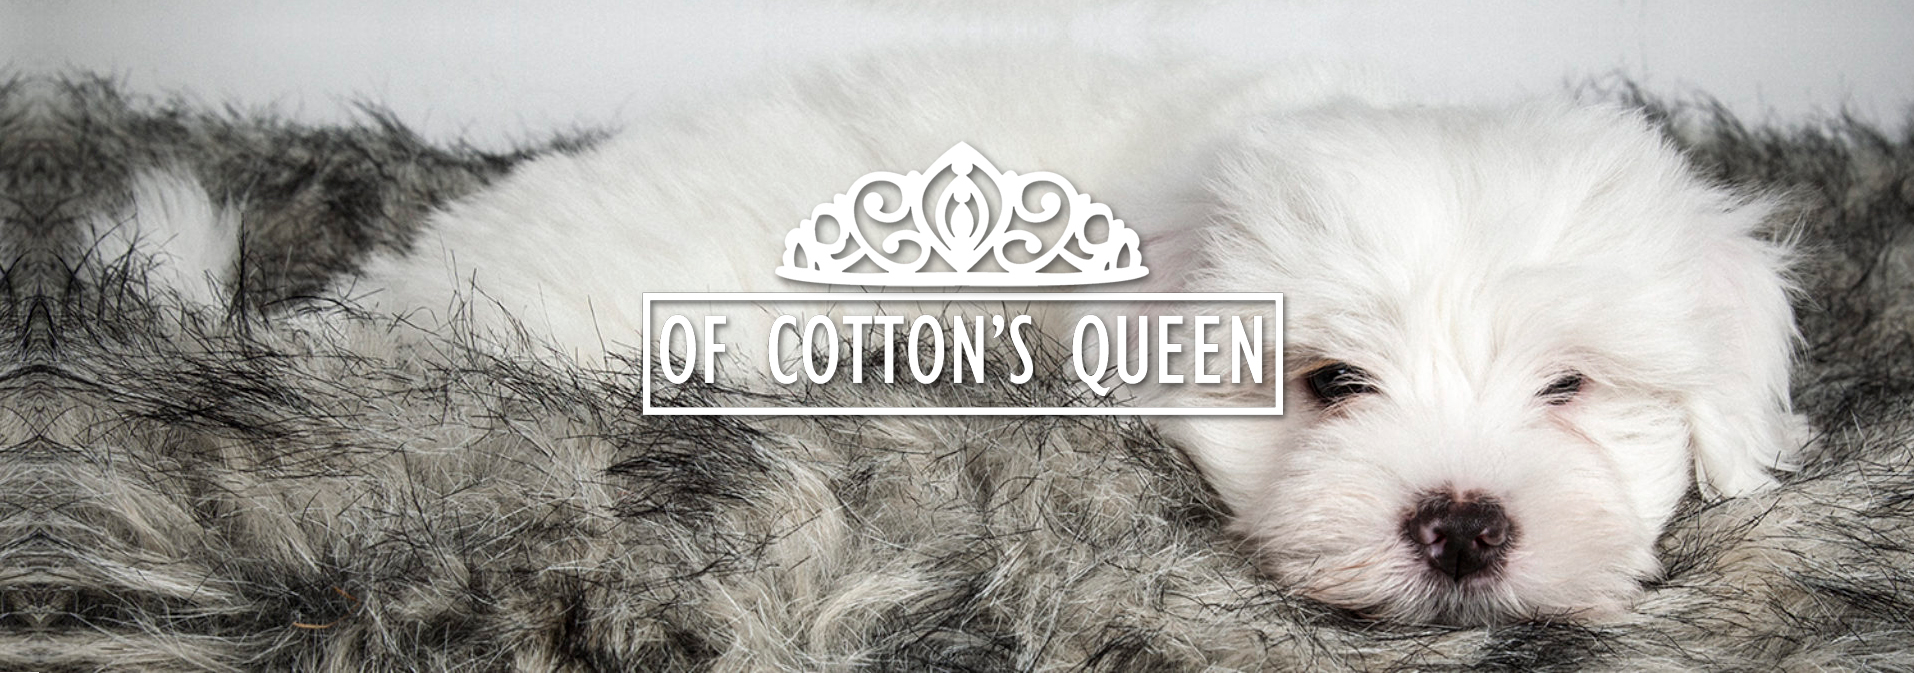 Of Cotton's Queen